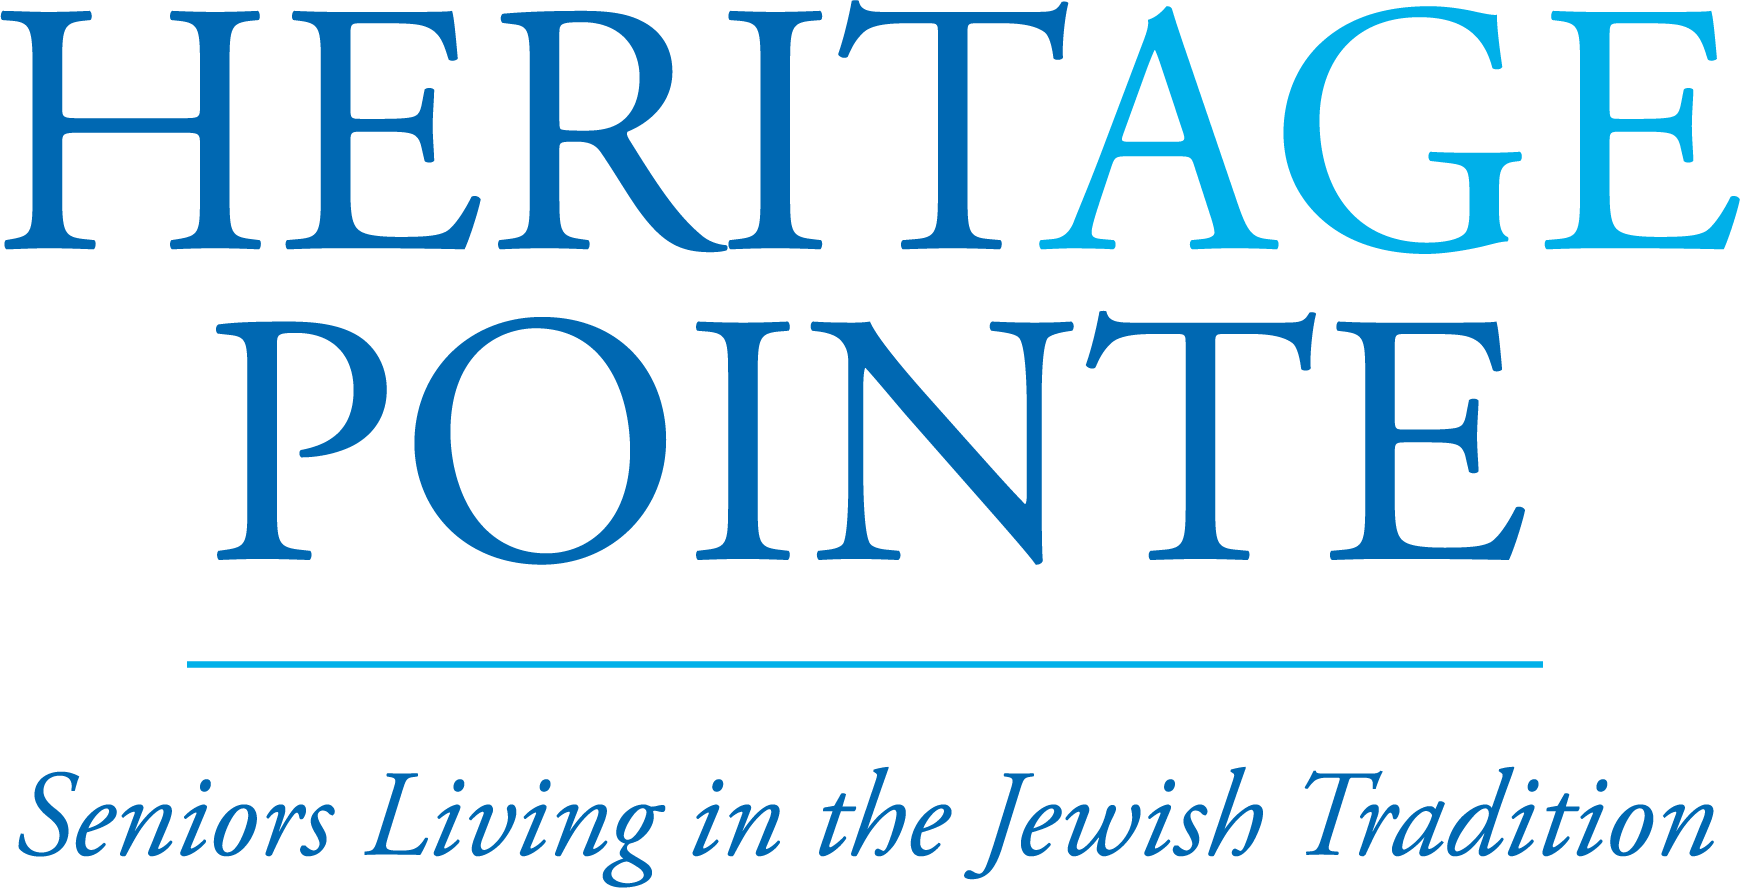 heritage pointe logo in all dark blue with age in light blue